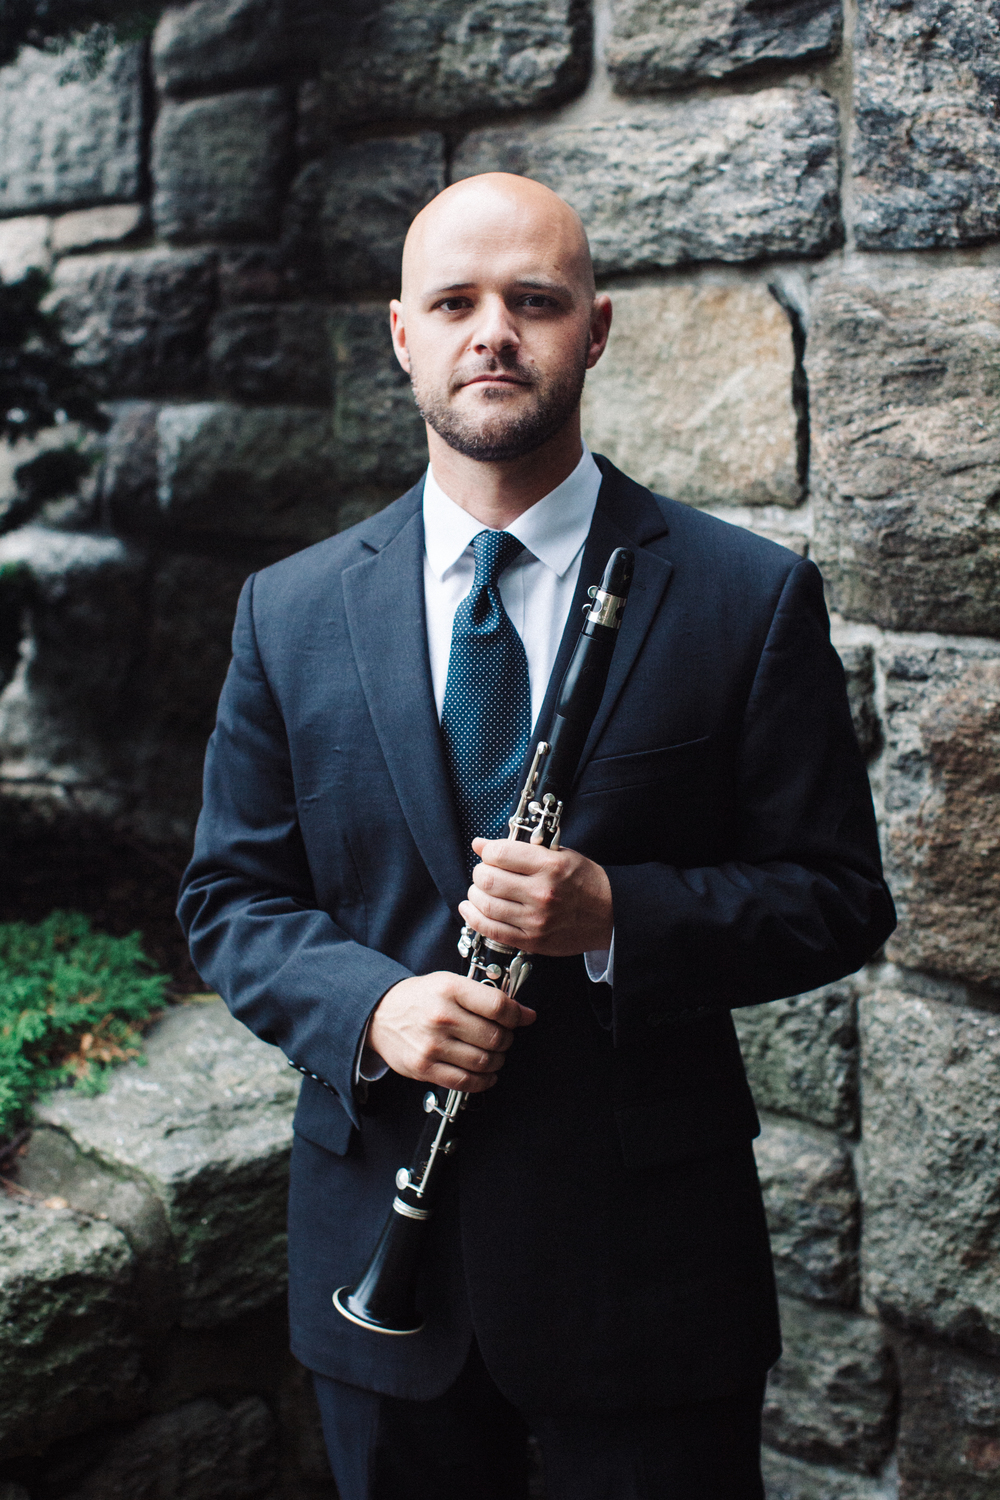 Bill Kalinkos, clarinet